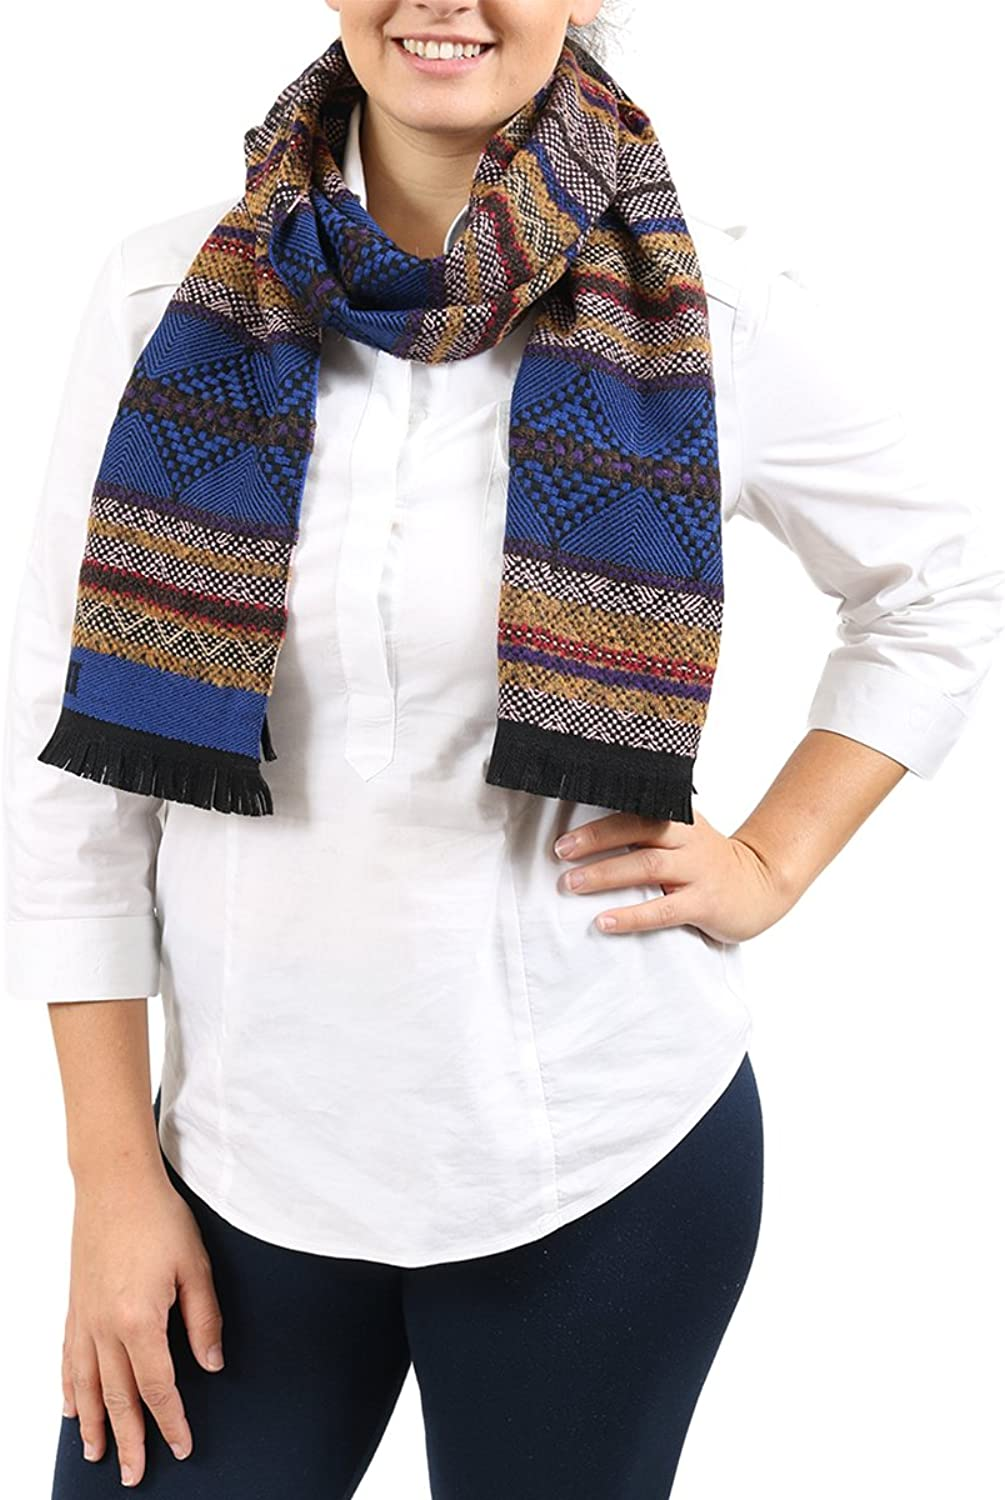 Missoni bluee Tan Abstract Scarf for Womens